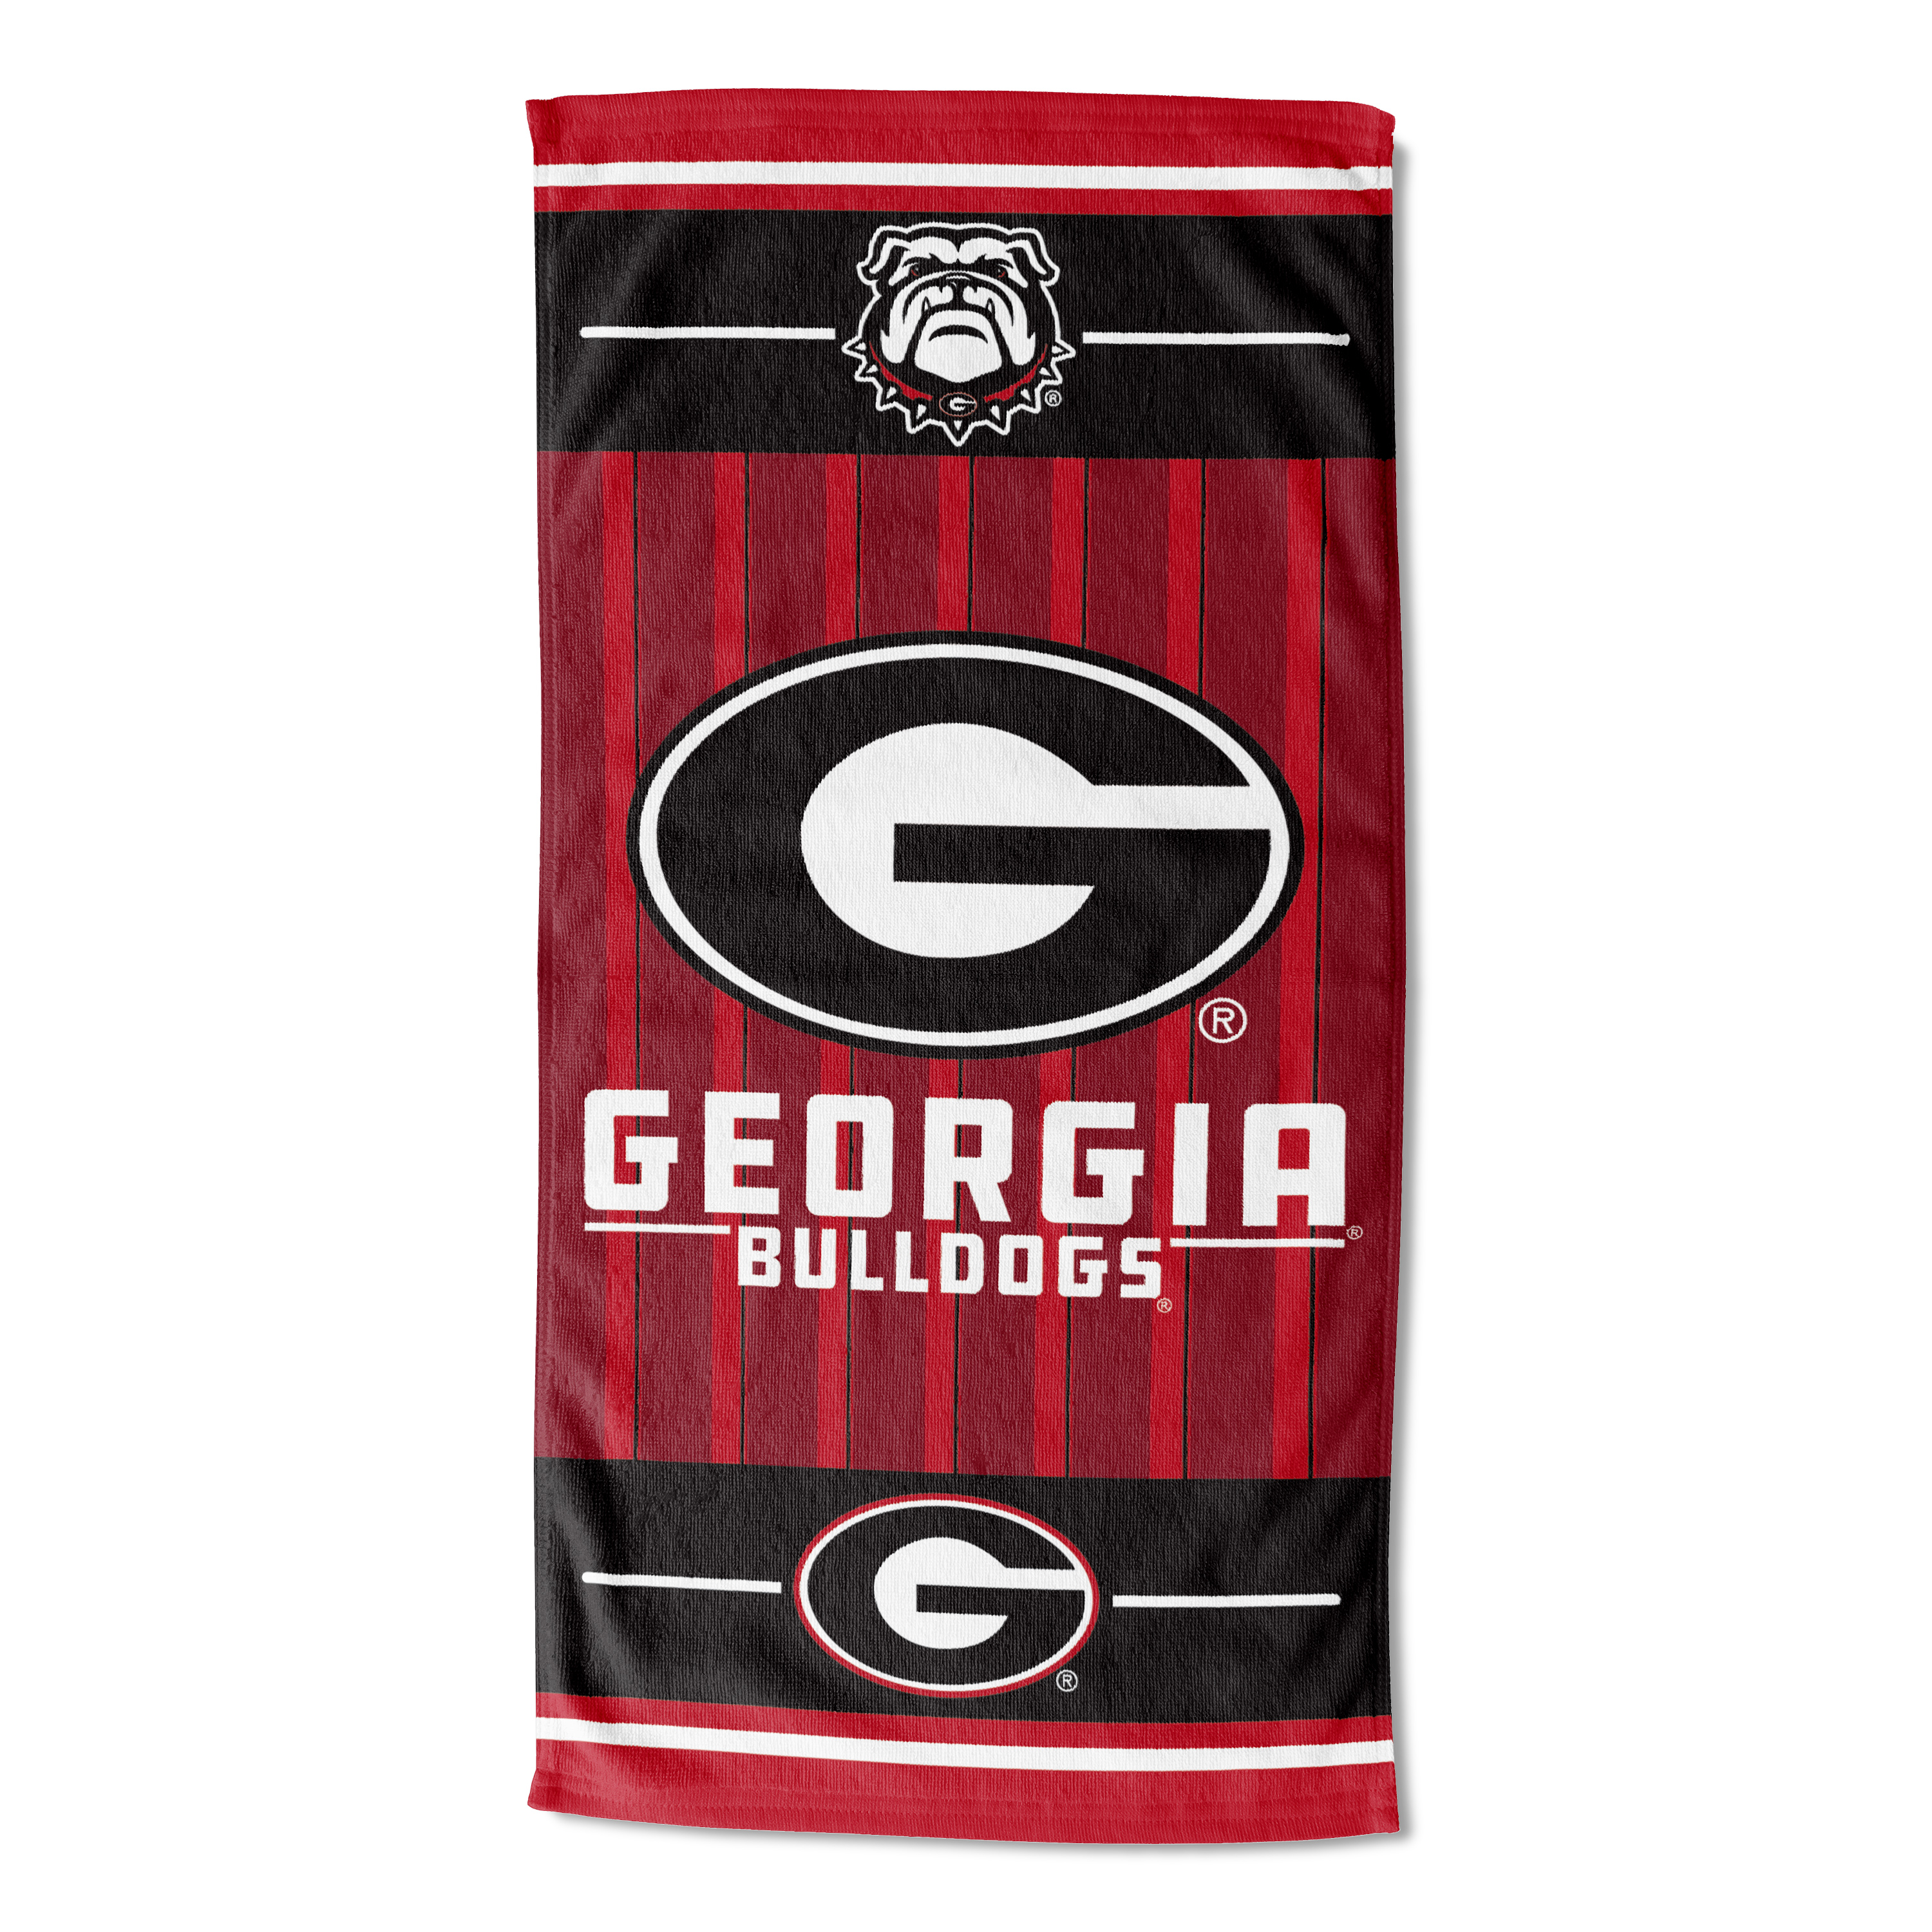 Georgia Bulldogs Beach Towel, 1 Each